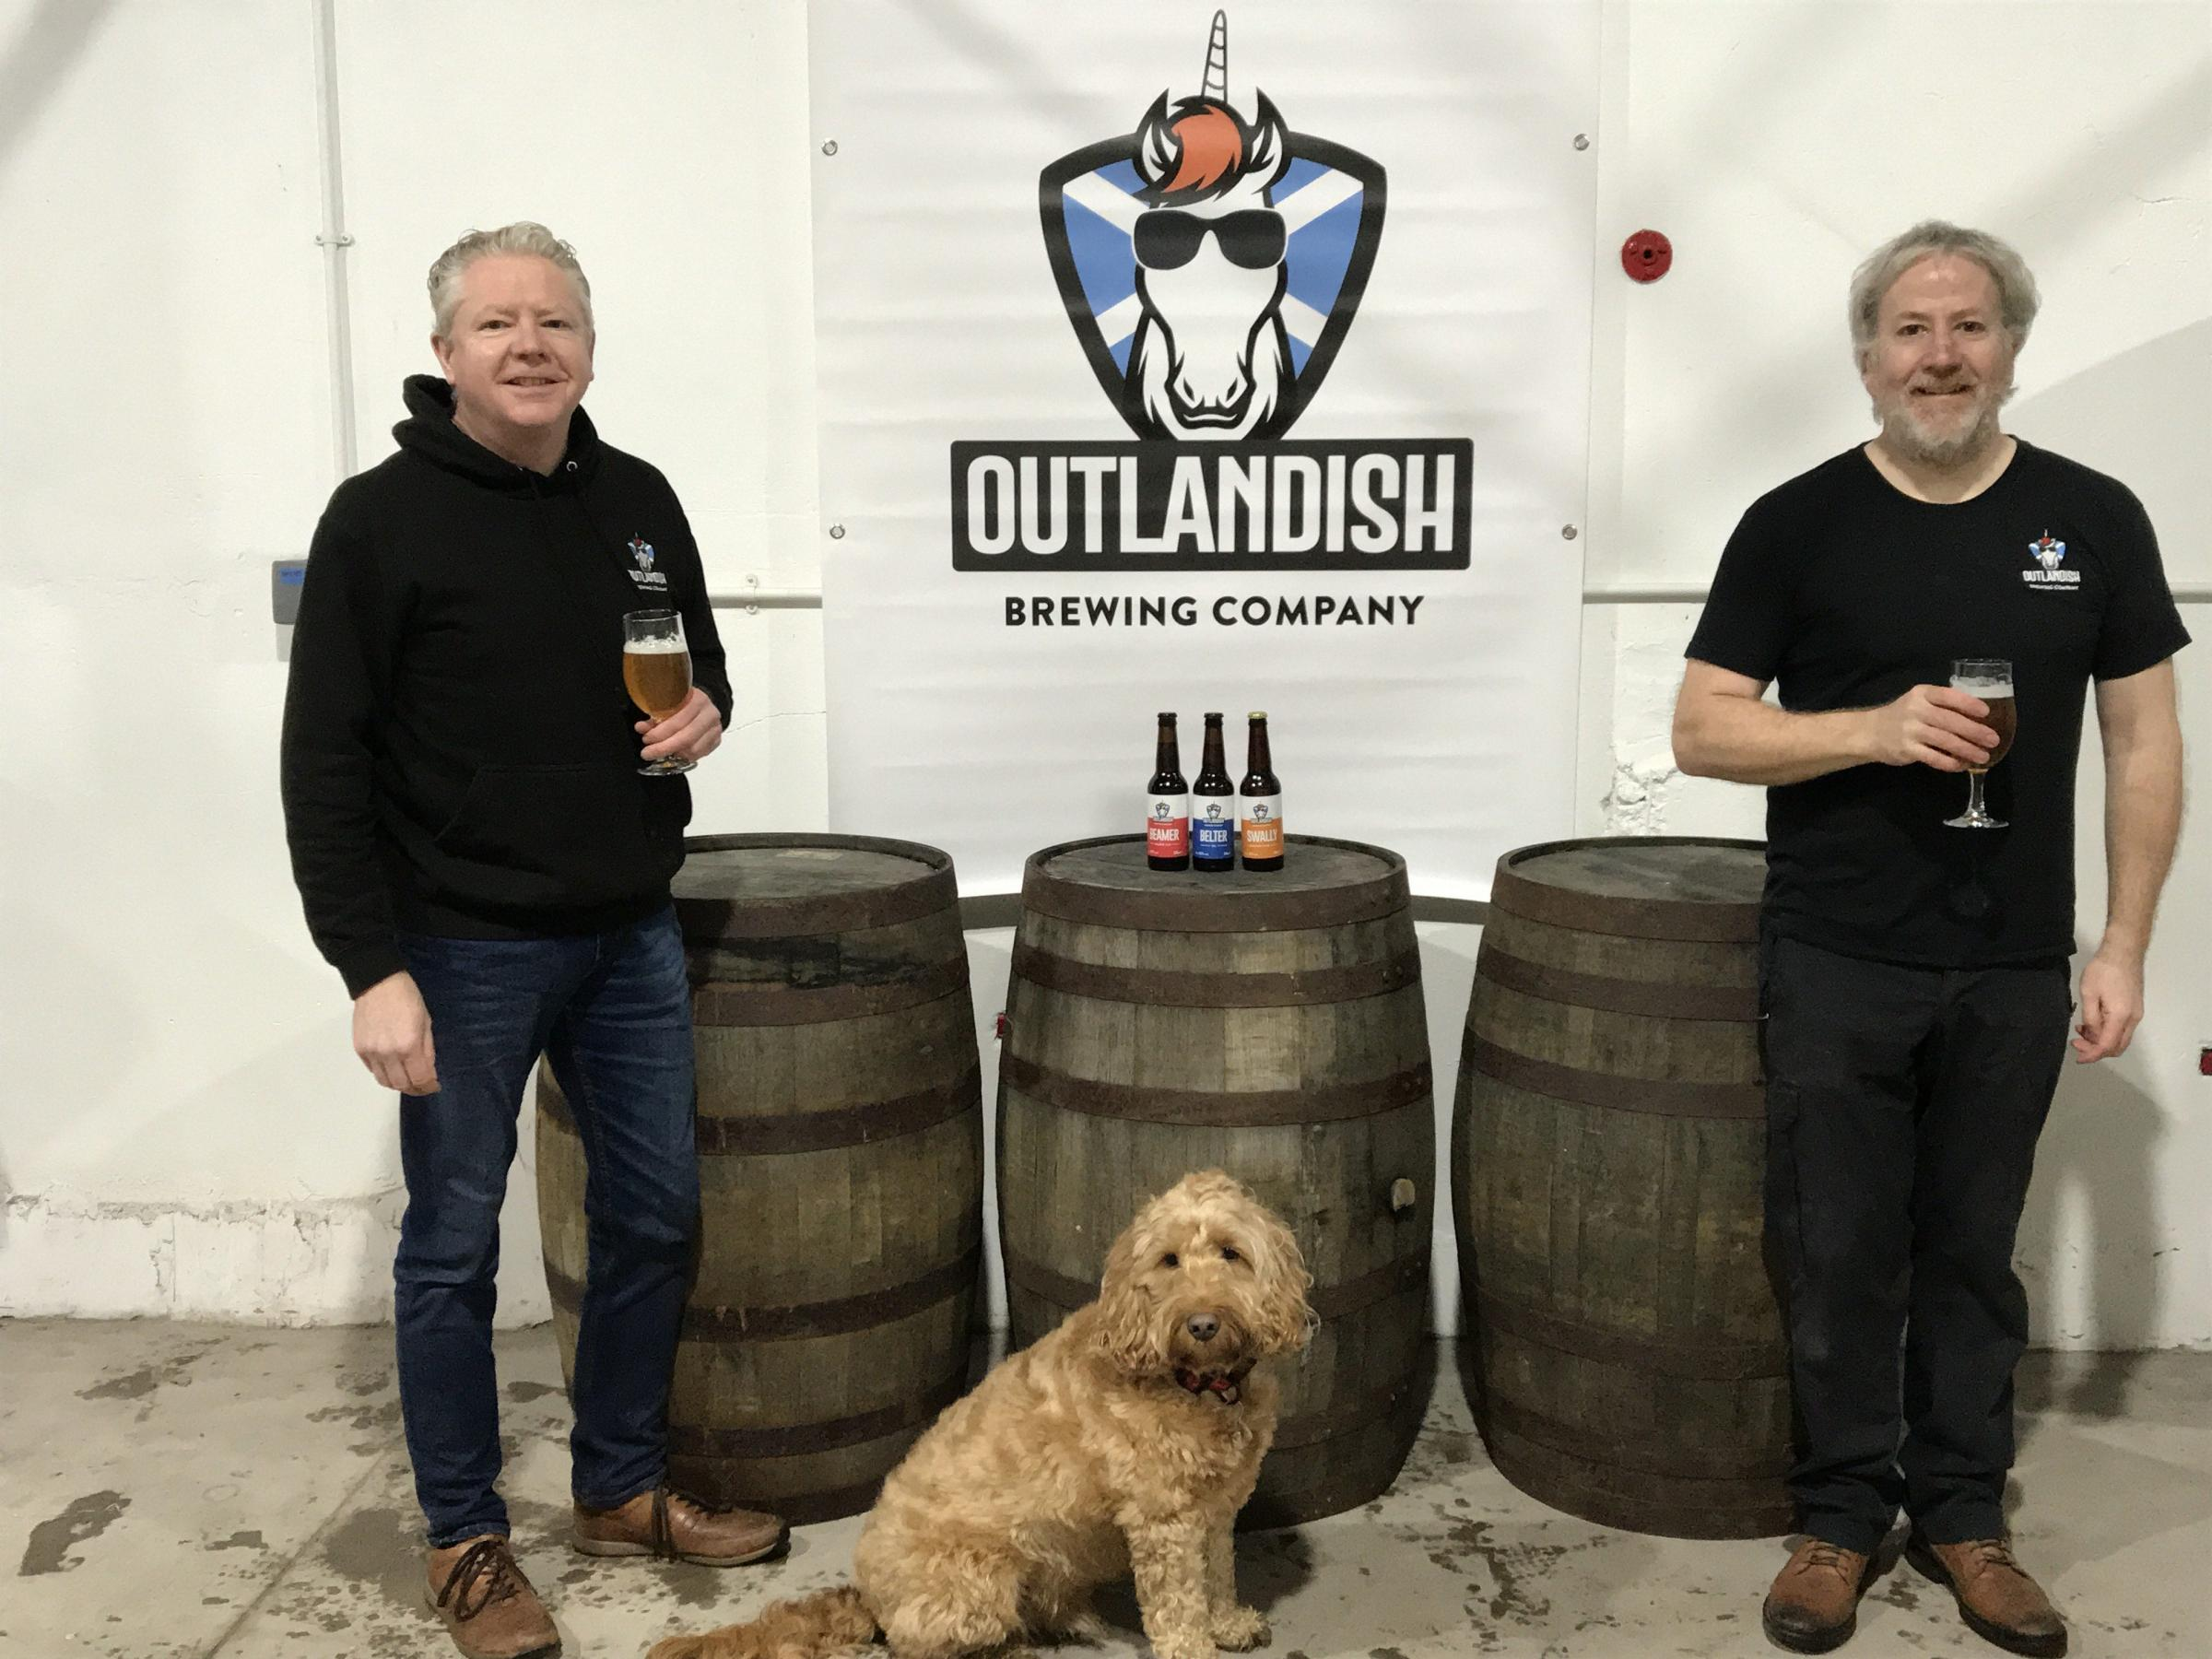 Lanarkshire brothers realise brewing dream